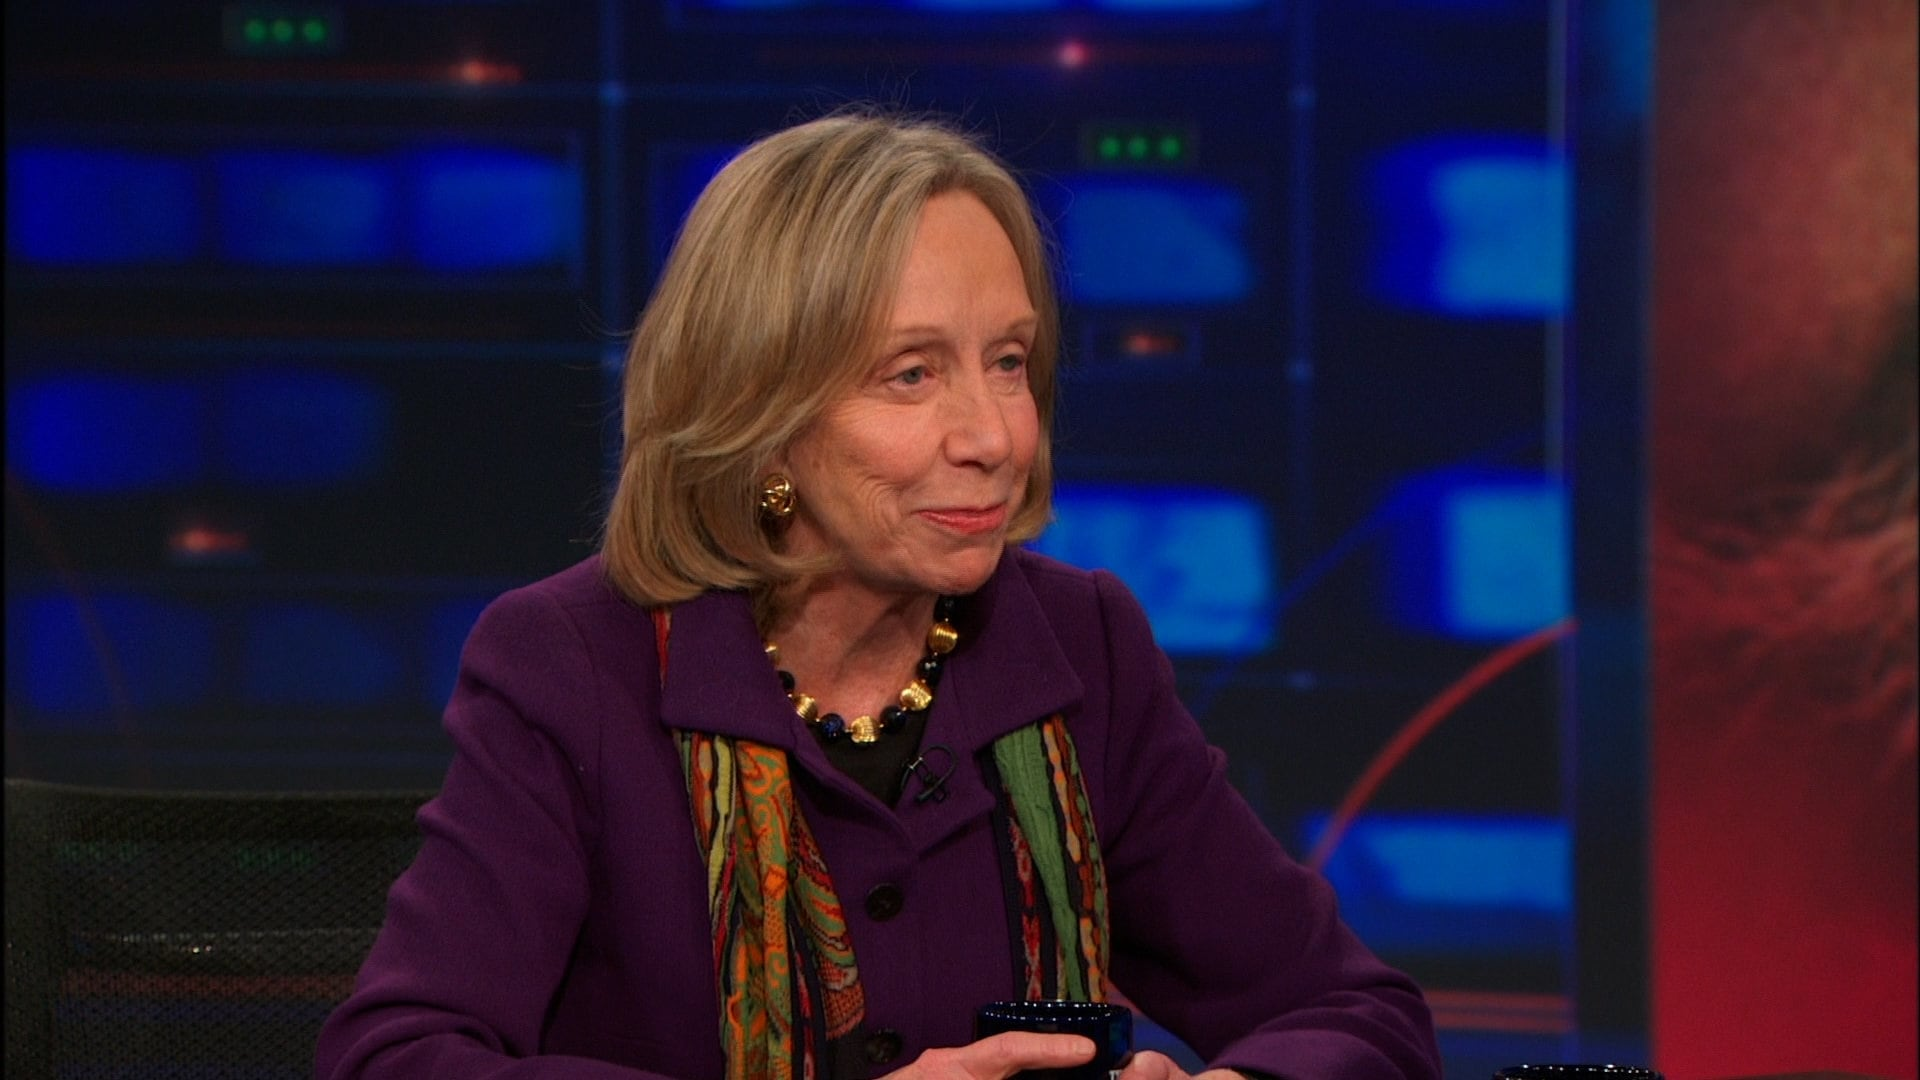 The Daily Show with Trevor Noah Season 19 :Episode 21  Doris Kearns Goodwin